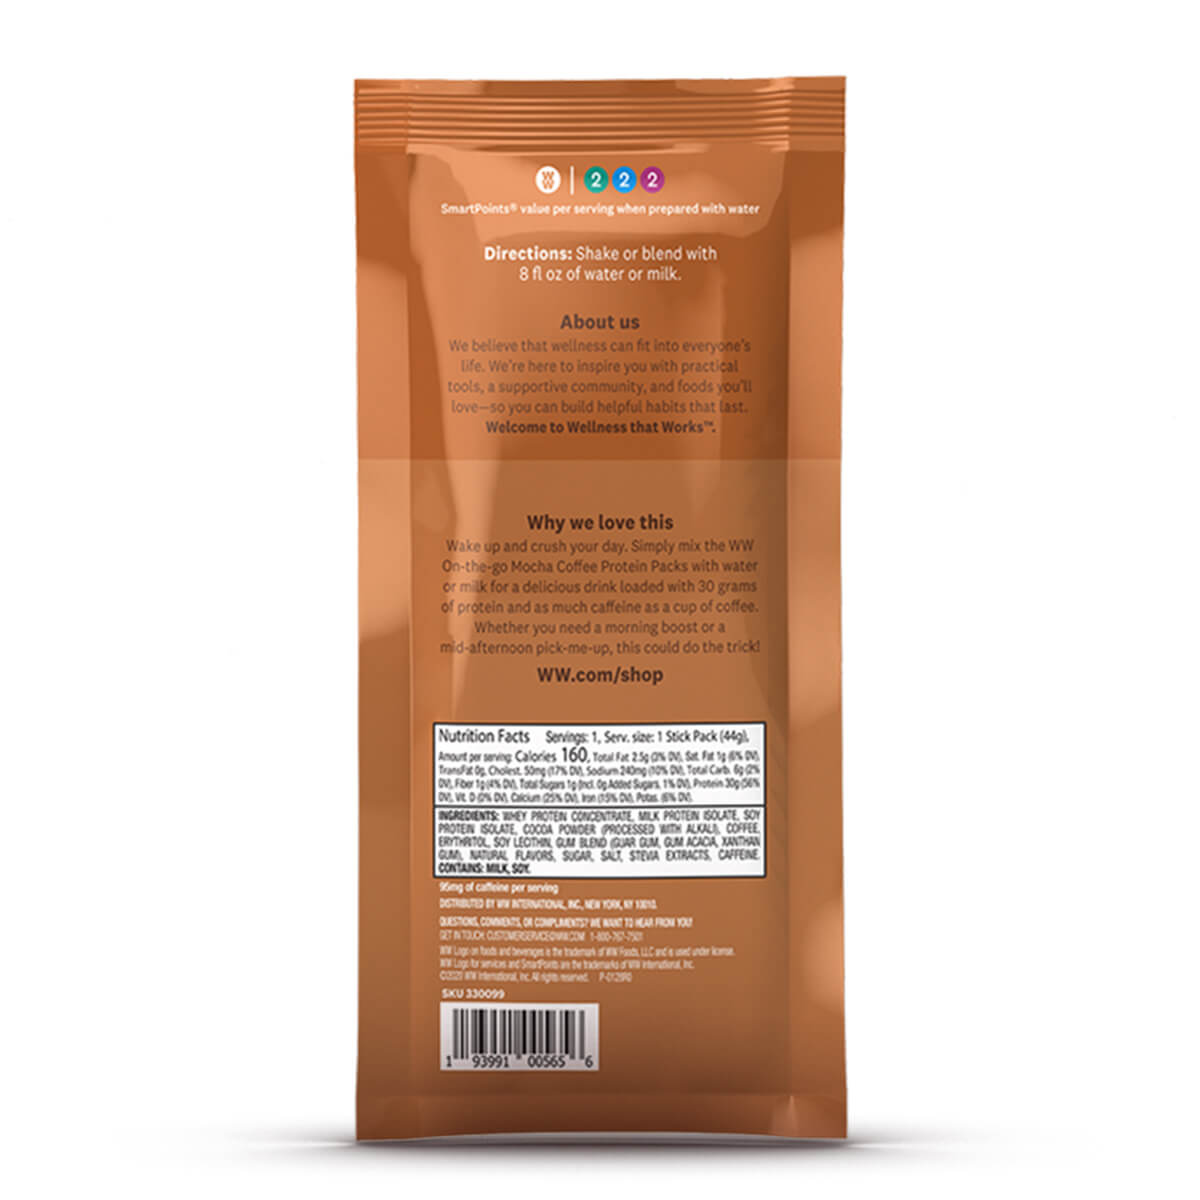 On the Go Mocha Coffee Protein Pack - pouch back